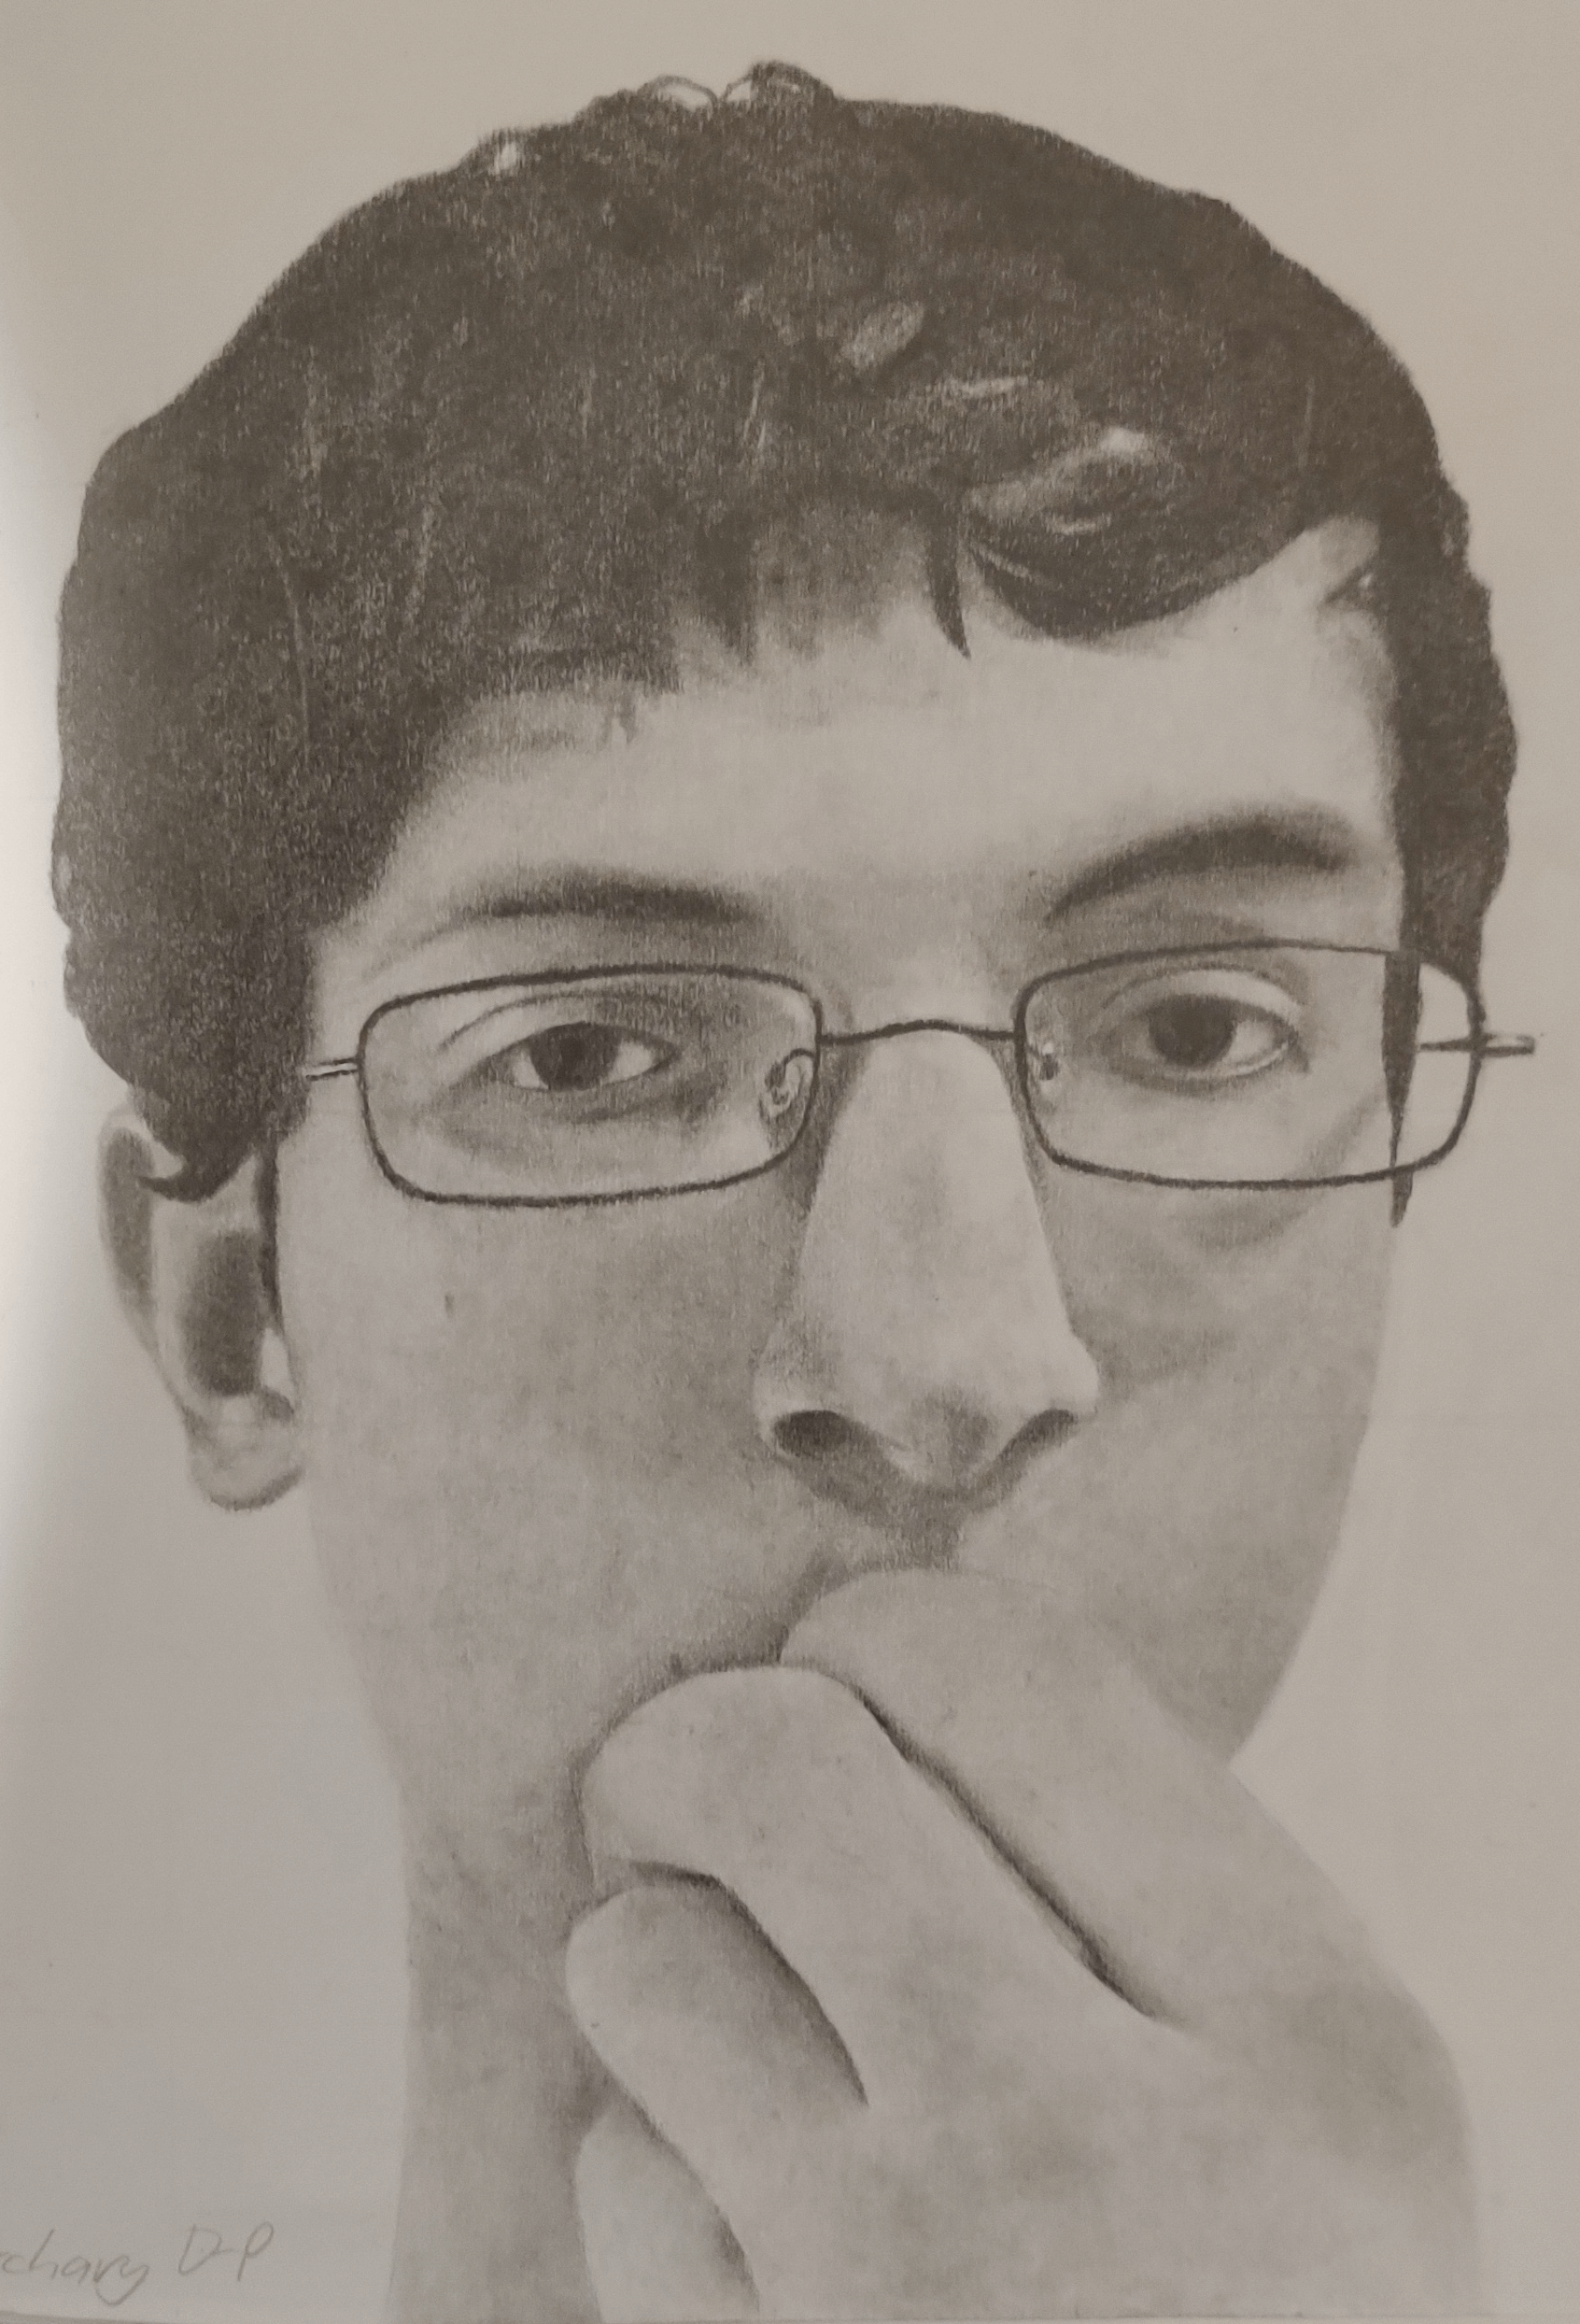 A self-portrait from back when I wore glasses.